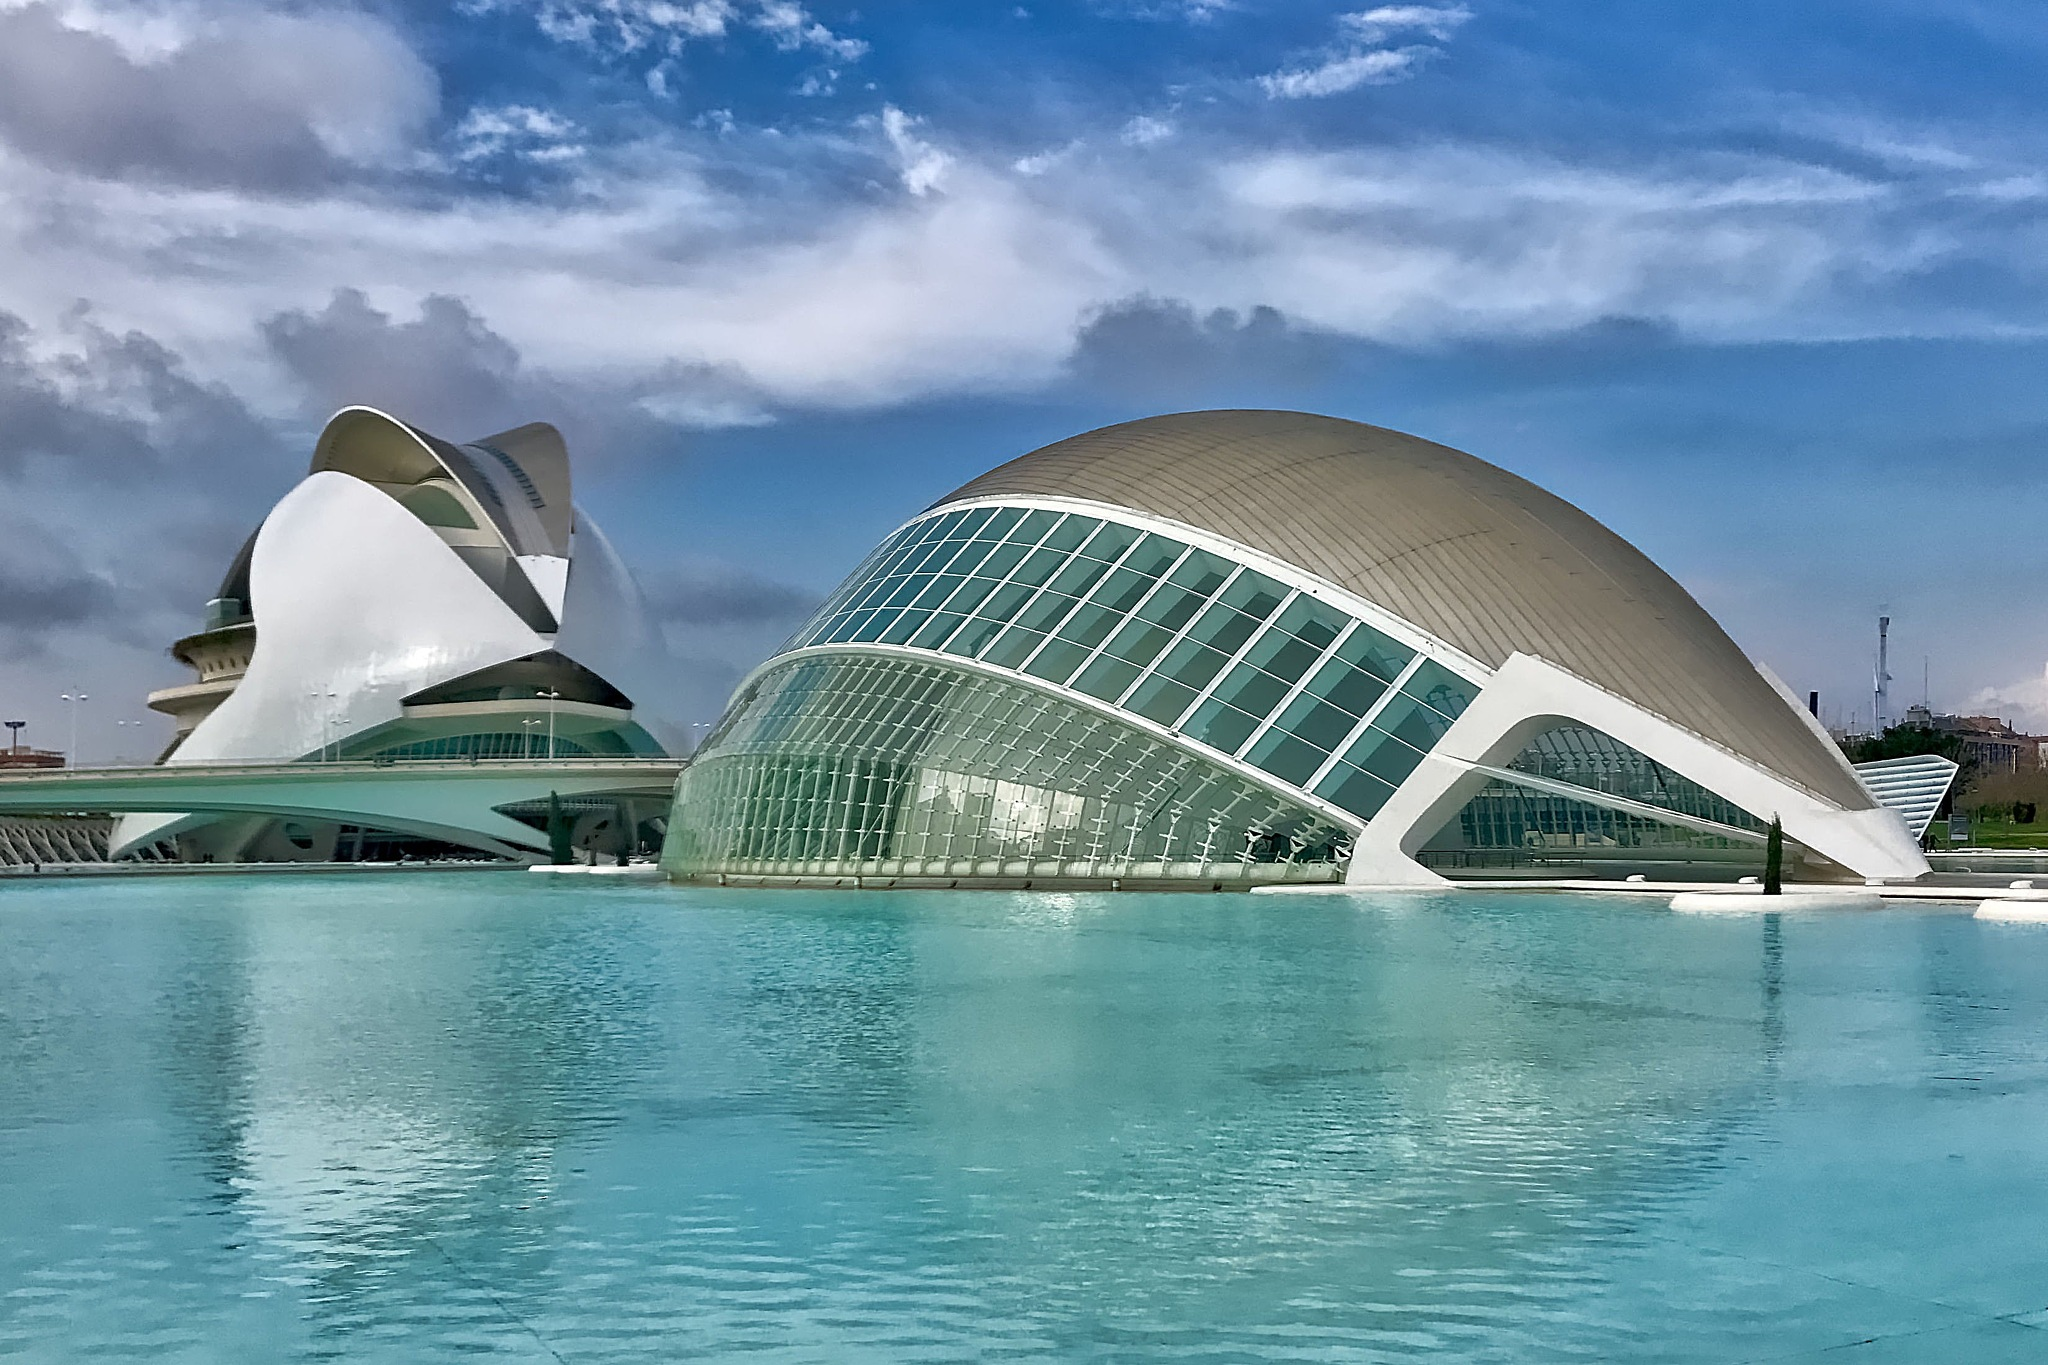 Science and Art Museum at Valencia in Spain. by Erwin Widmer